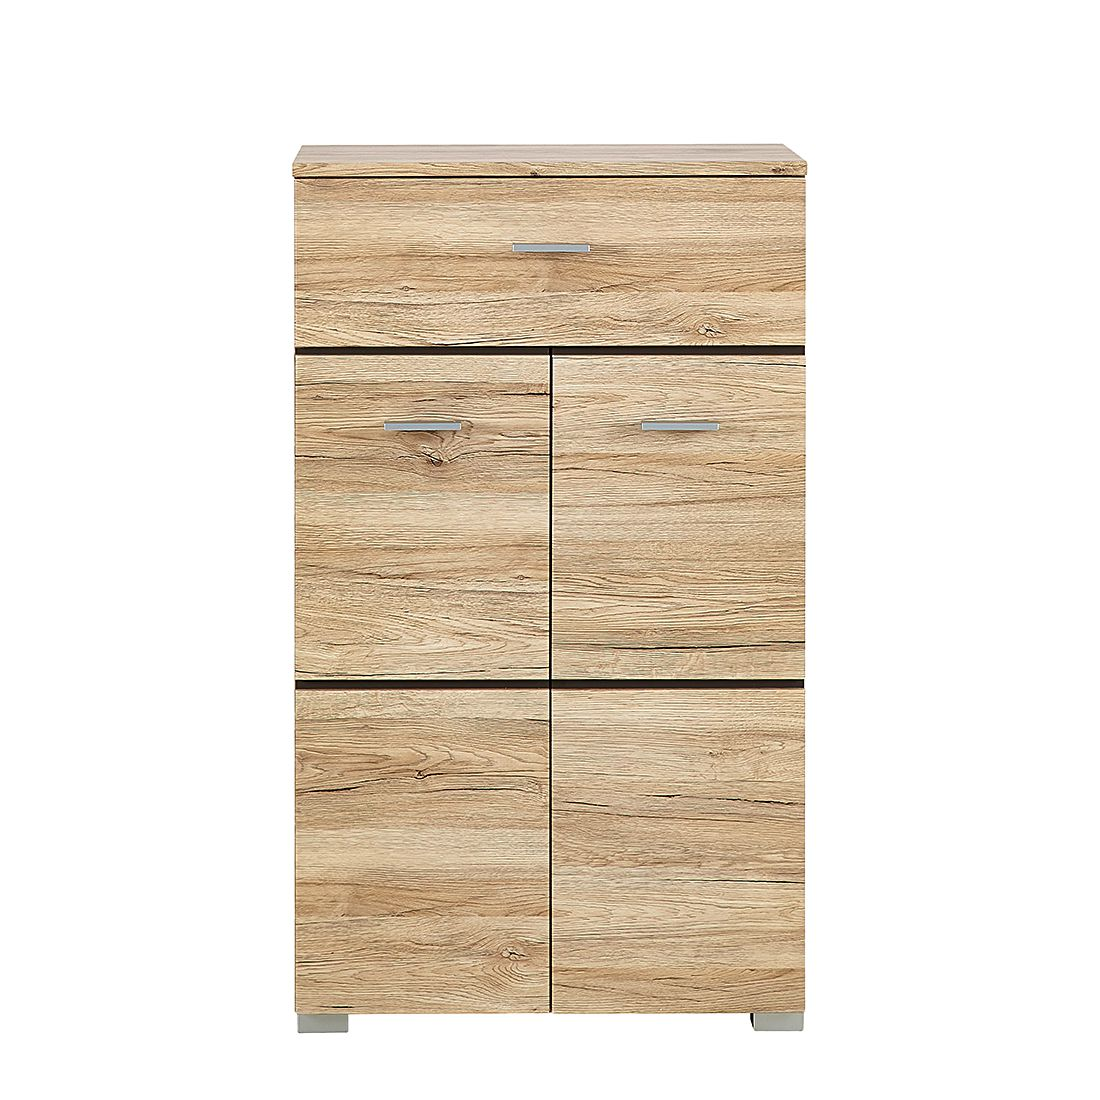 schuhschrank 40 cm breit preisvergleiche erfahrungsberichte und kauf bei nextag. Black Bedroom Furniture Sets. Home Design Ideas